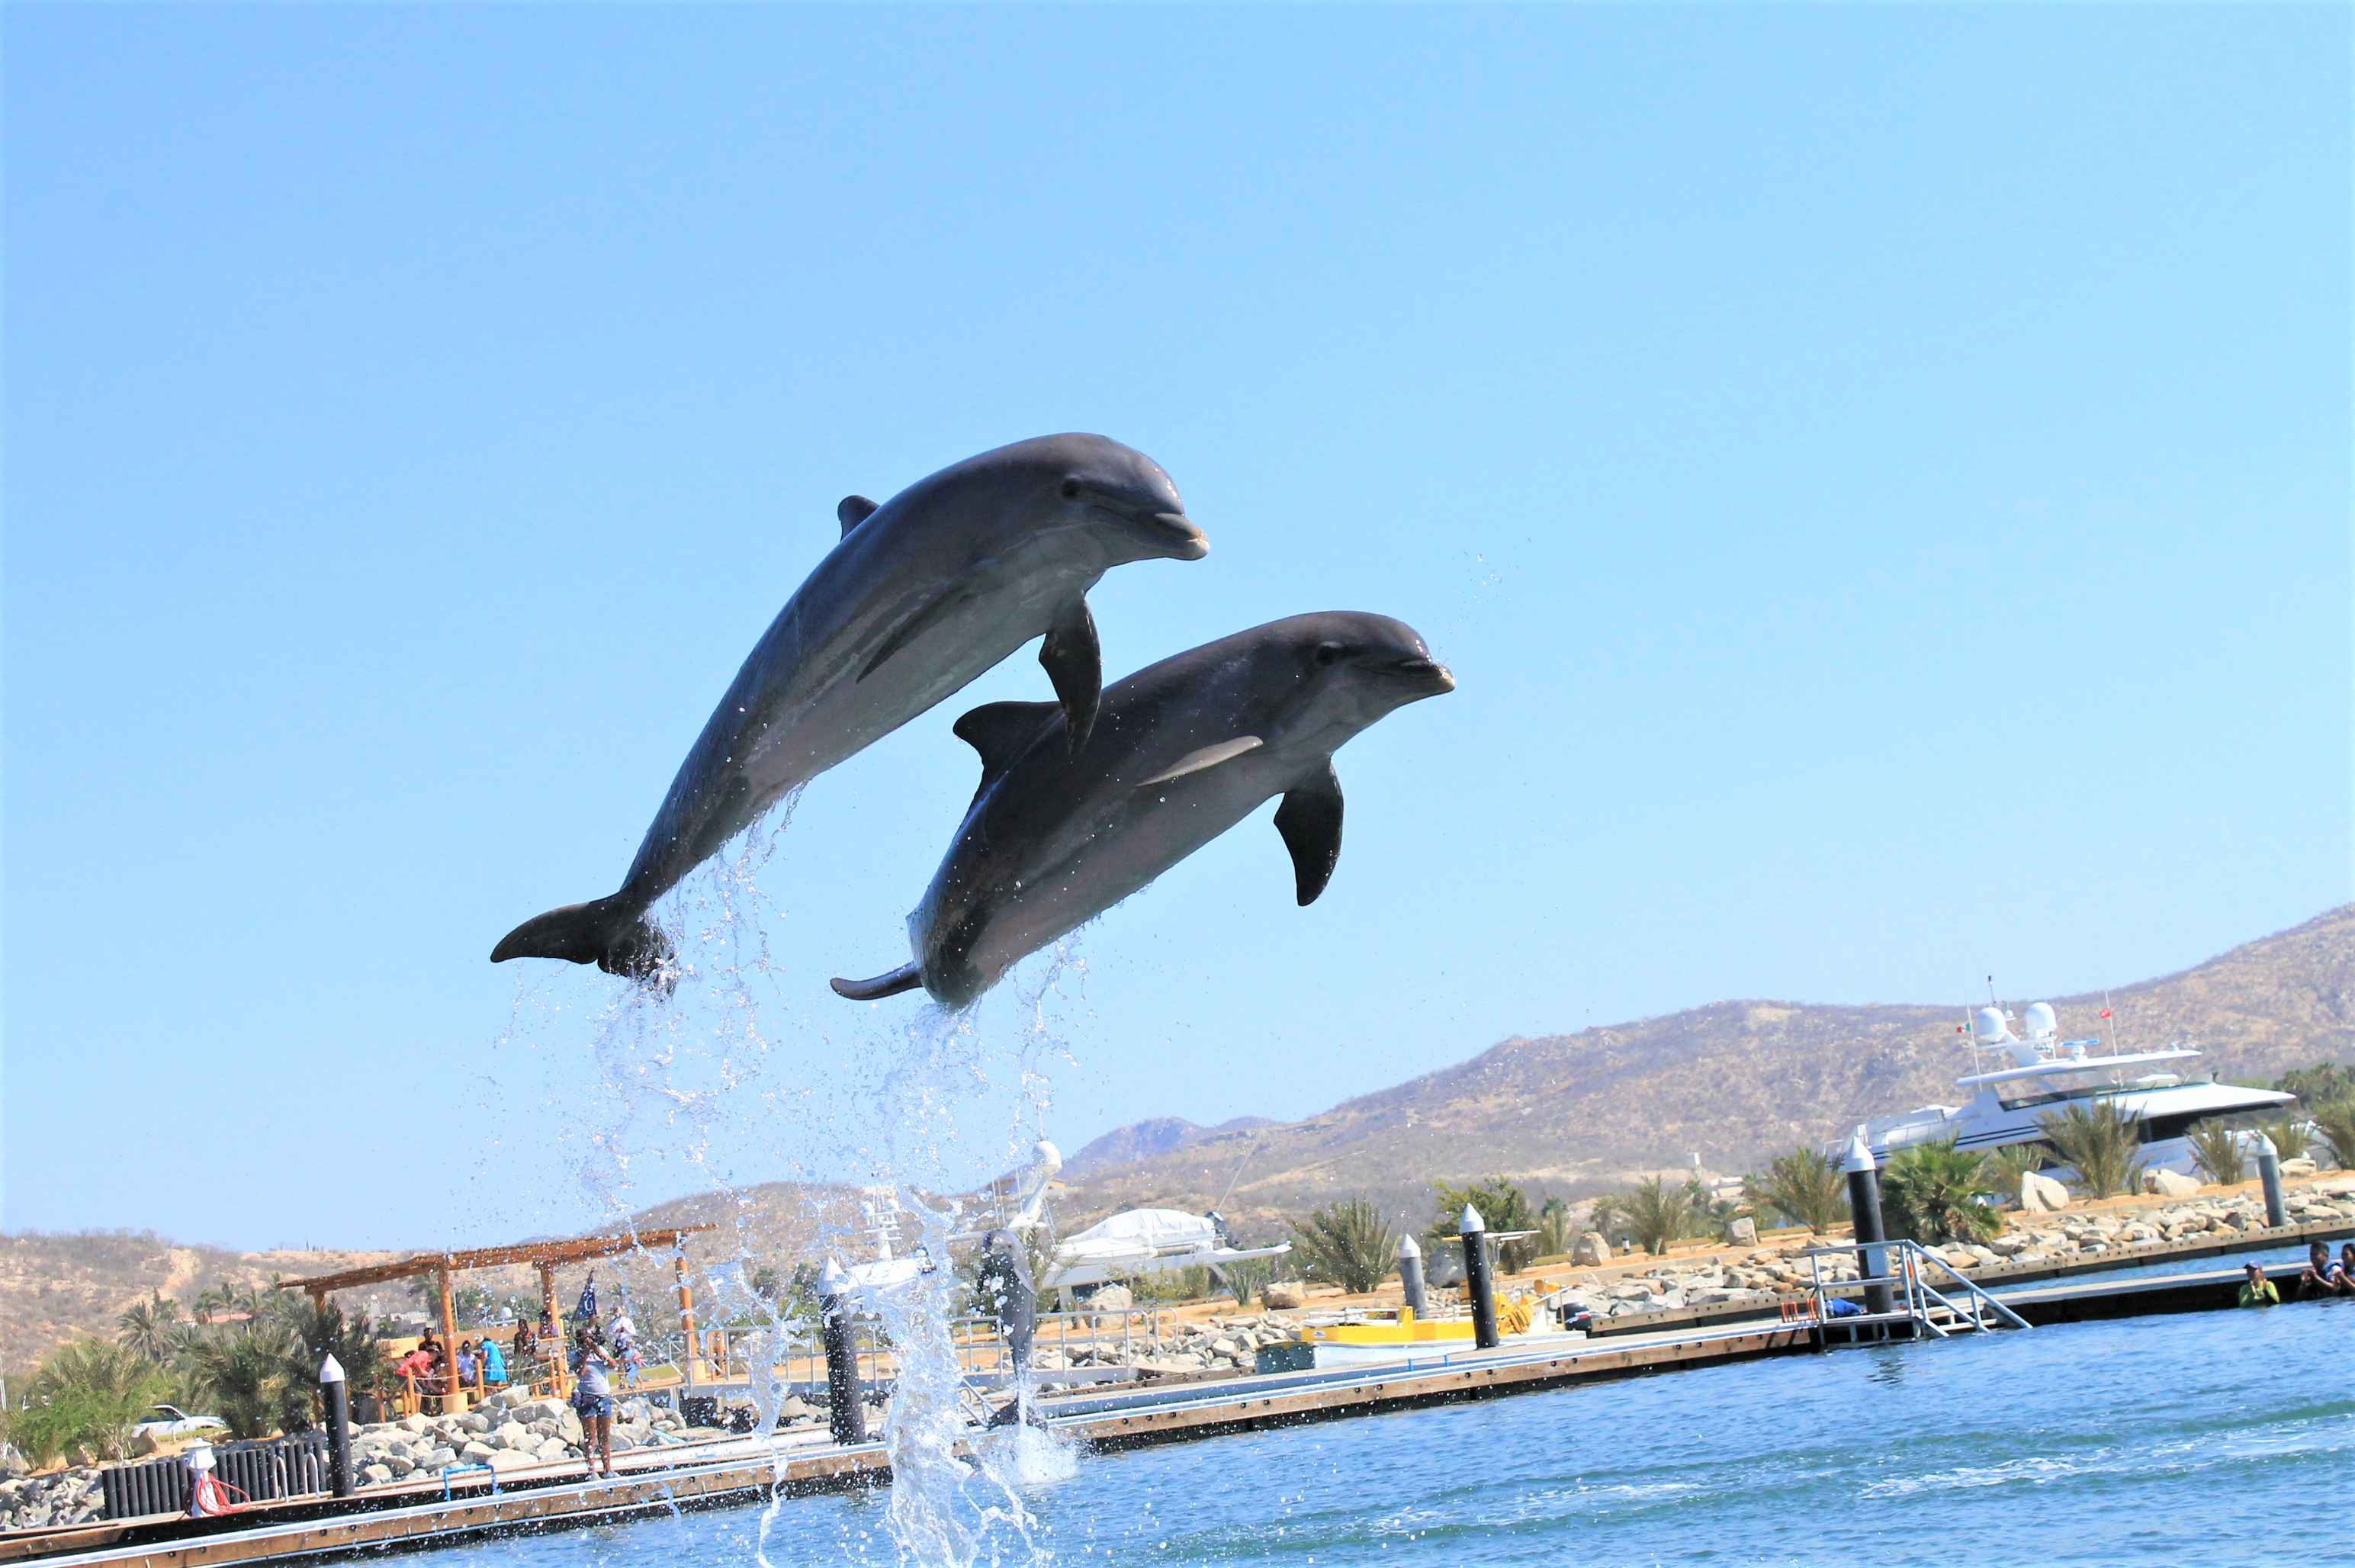 Dolphin Encounter - Last Minute Tours in Los Cabos